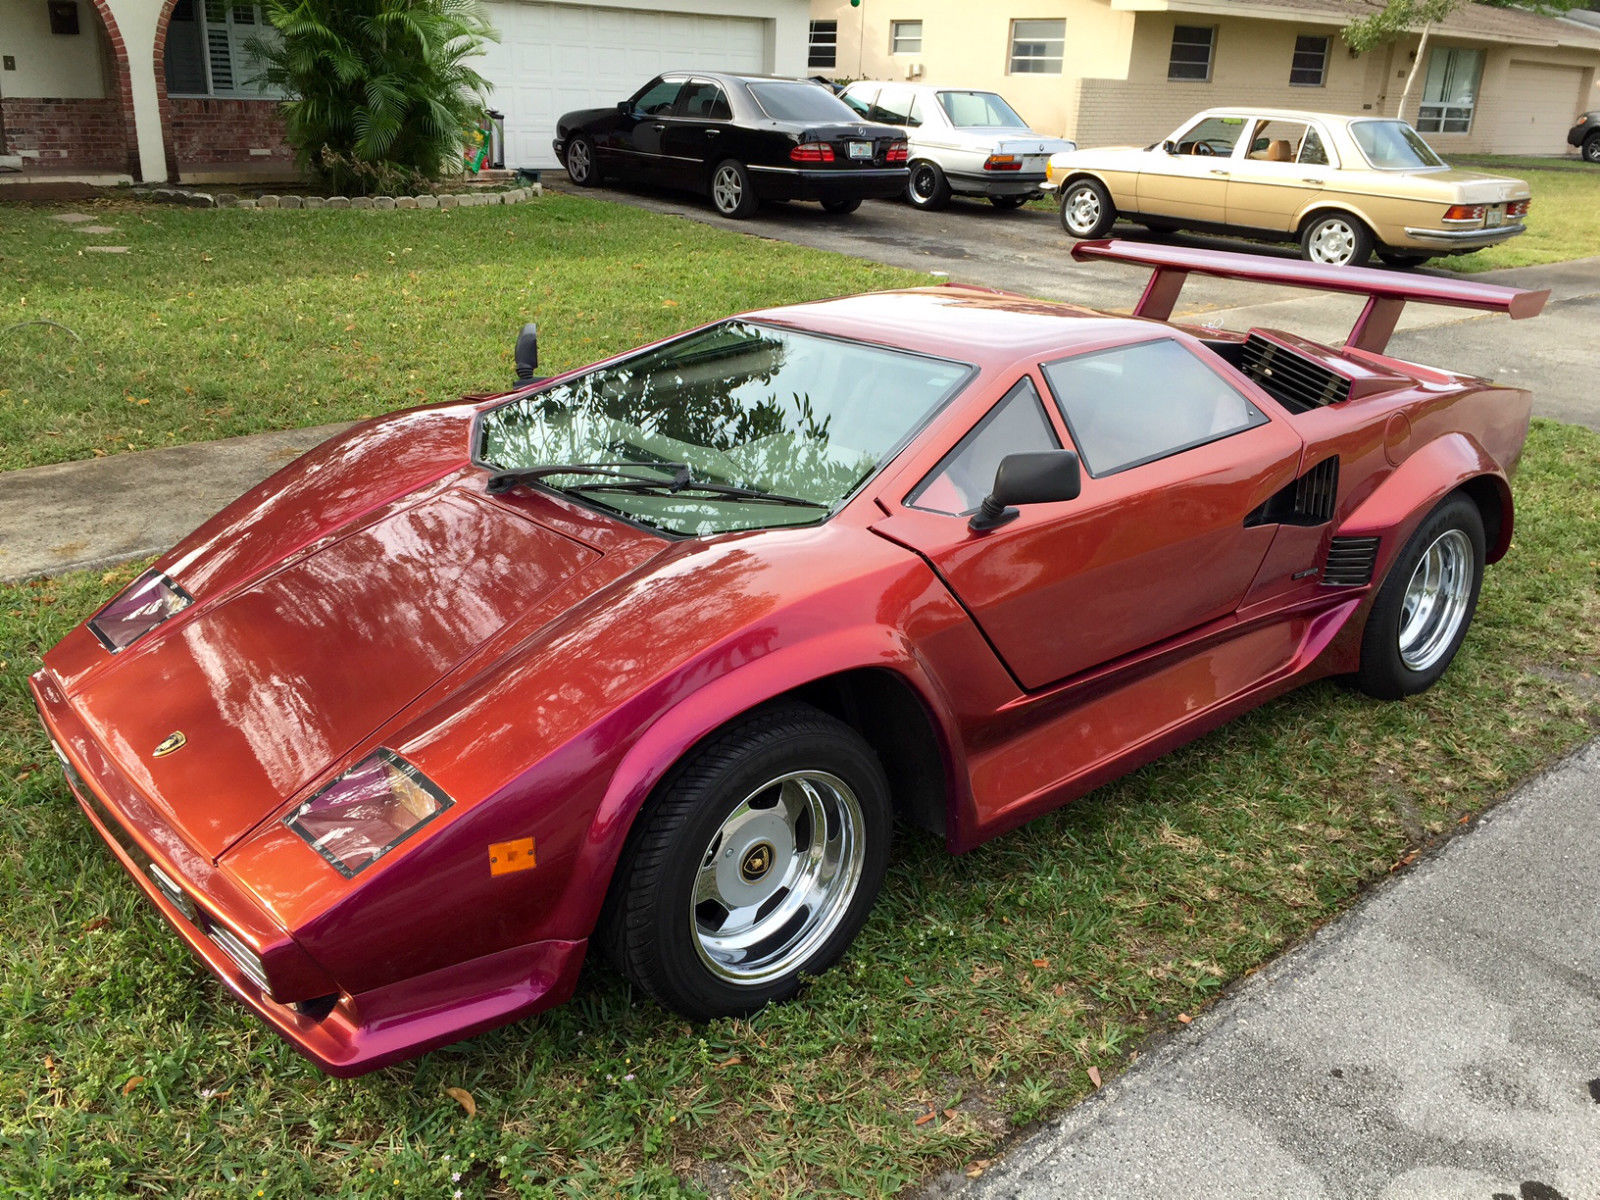 1985 lamborghini countach 5000 replica for sale in fort lauderdale florida united states. Black Bedroom Furniture Sets. Home Design Ideas